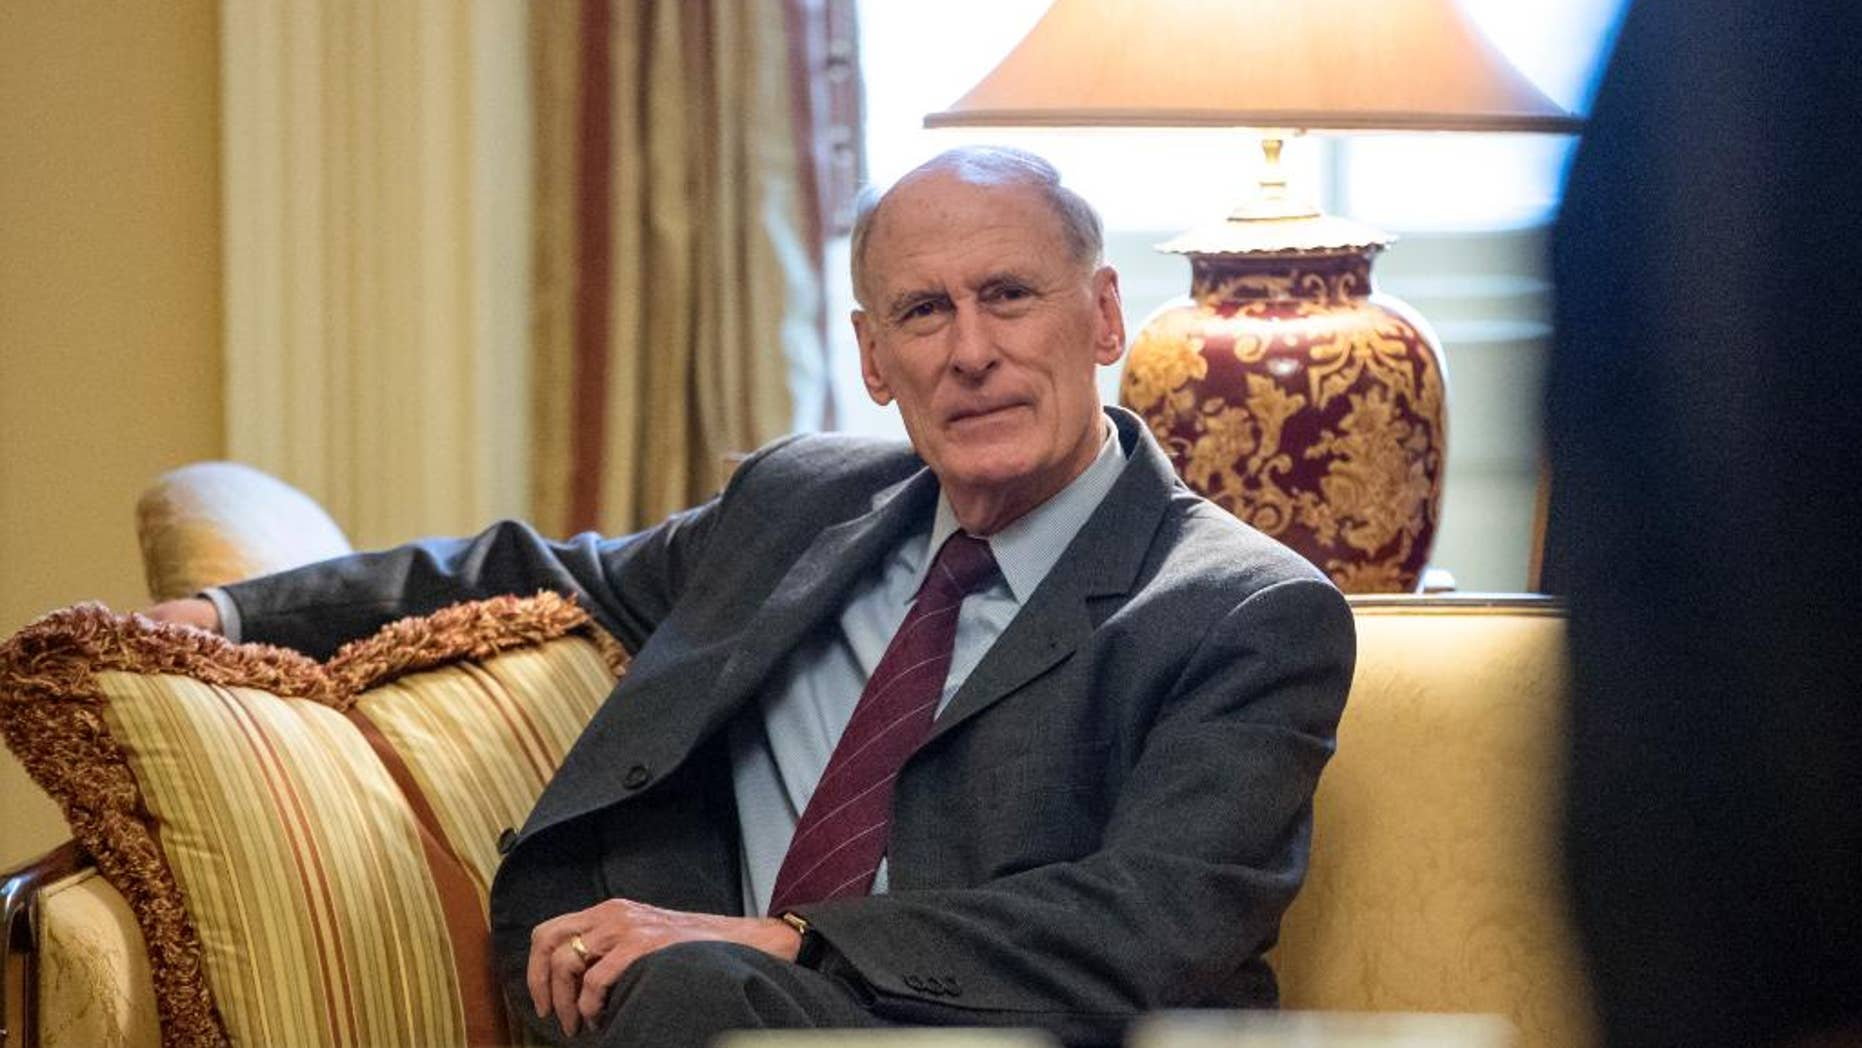 FILE - In this Jan. 23, 2017, file photo, National Intelligence Director nominee, former Indiana Sen, Dan Coats waits for the start of a meeting with Senate Majority Leader Mitch McConnell of Ky. on Capitol Hill in Washington. Partisan discord is seeping into House and Senate intelligence committee investigations of the Kremlin's interference in the 2016 presidential election and whether President Donald Trump has ties to Russia. The issue will likely surface at the Feb. 28 Senate confirmation hearing for former Coats. (AP Photo/J. Scott Applewhite, File)